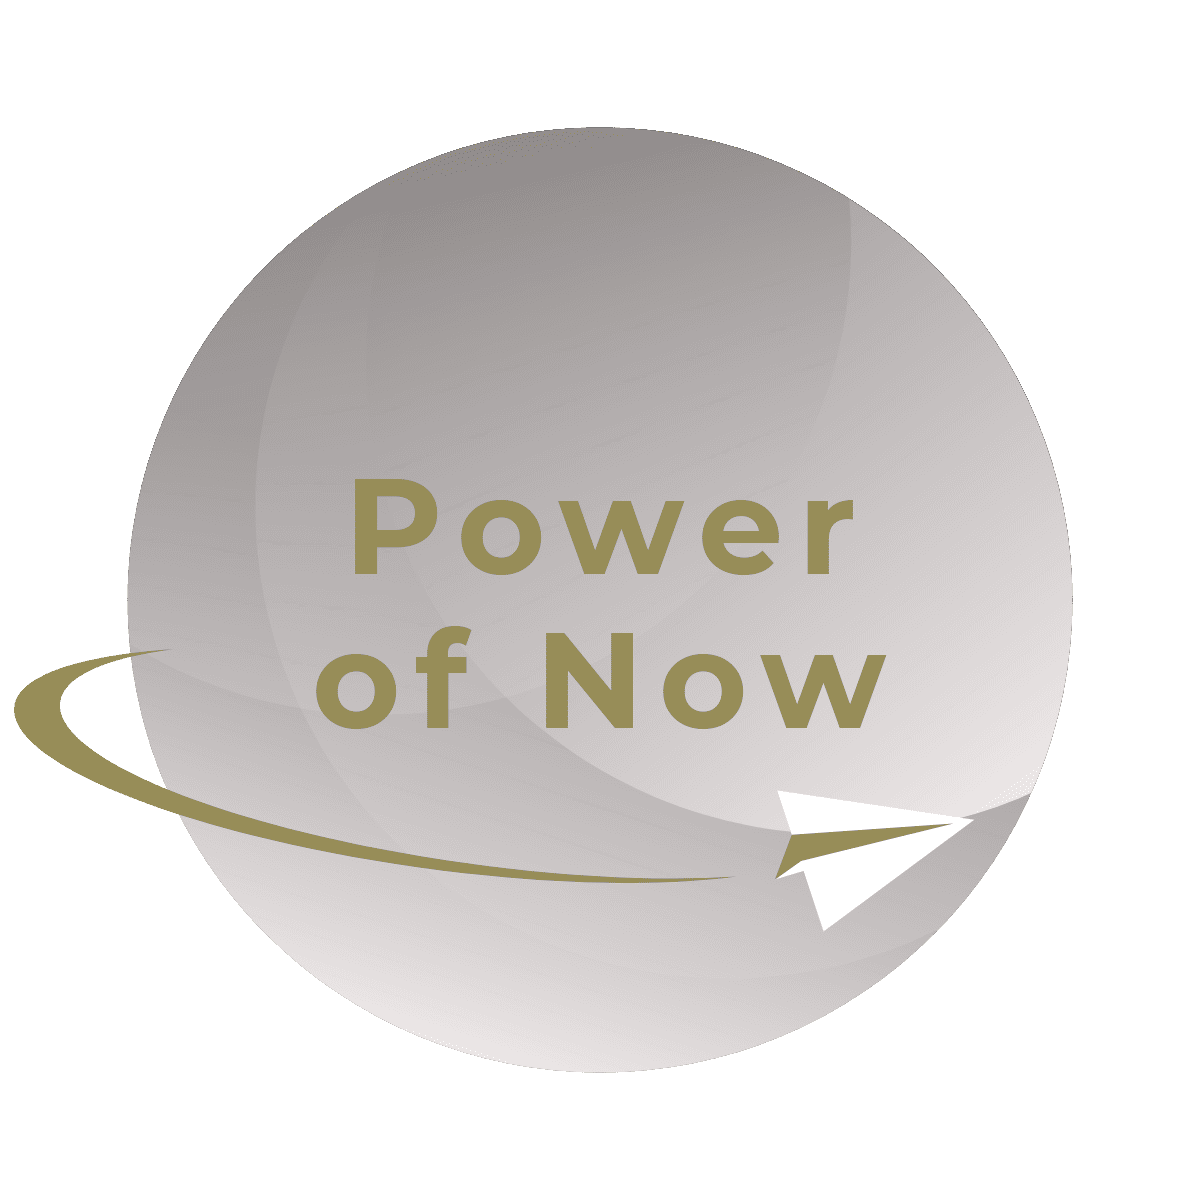 Power of Now Business